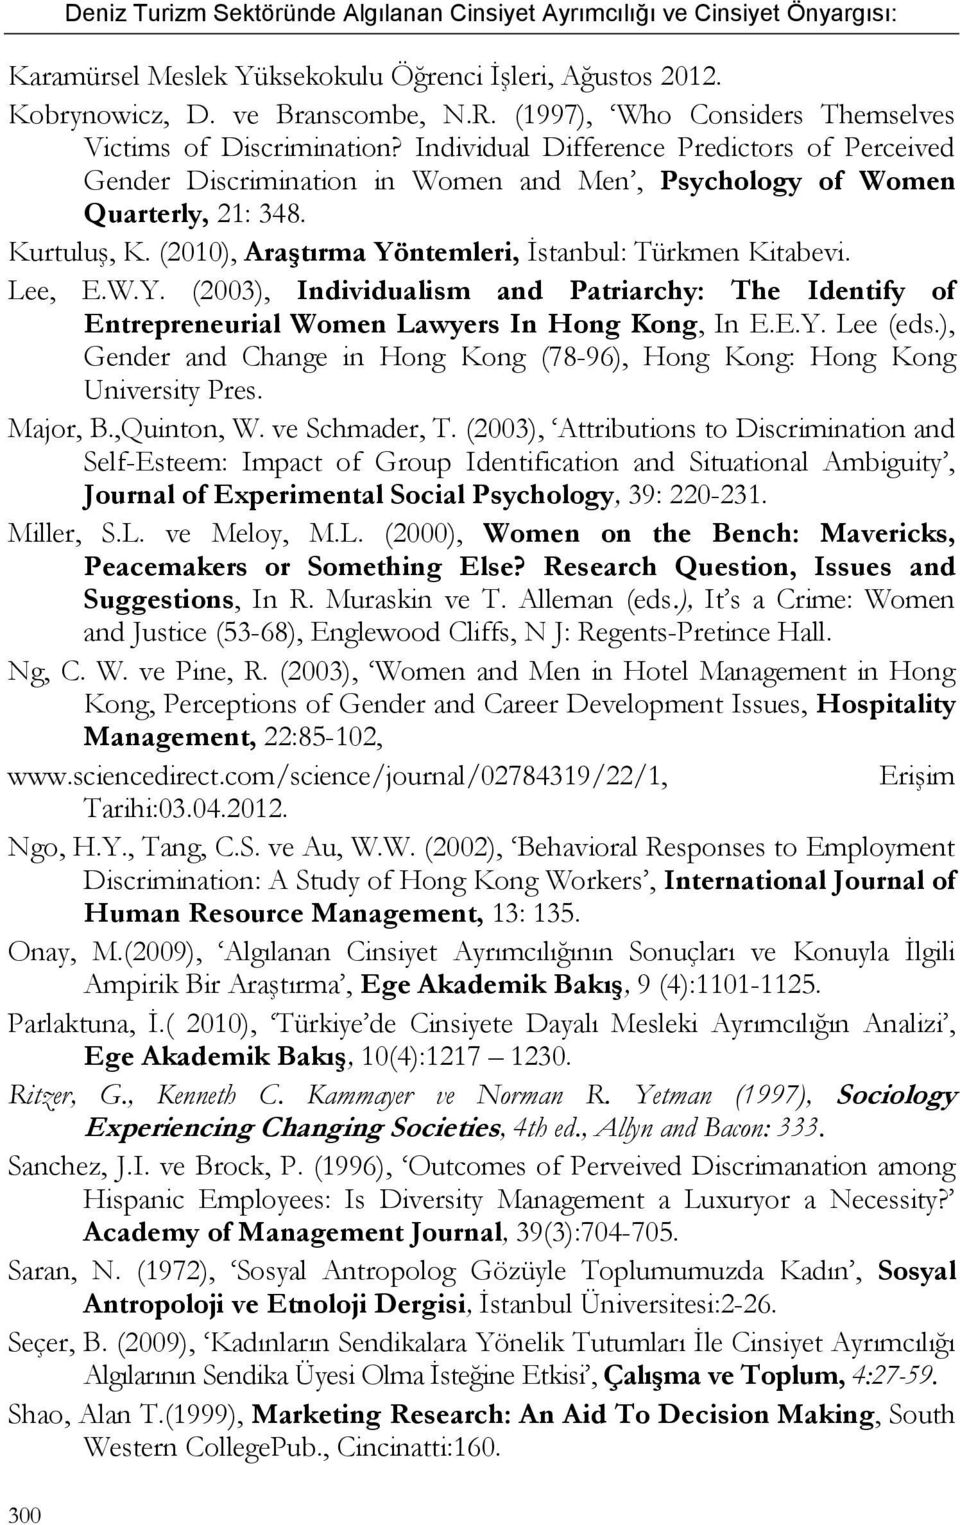 (2010), Araştırma Yöntemleri, İstanbul: Türkmen Kitabevi. Lee, E.W.Y. (2003), Individualism and Patriarchy: The Identify of Entrepreneurial Women Lawyers In Hong Kong, In E.E.Y. Lee (eds.